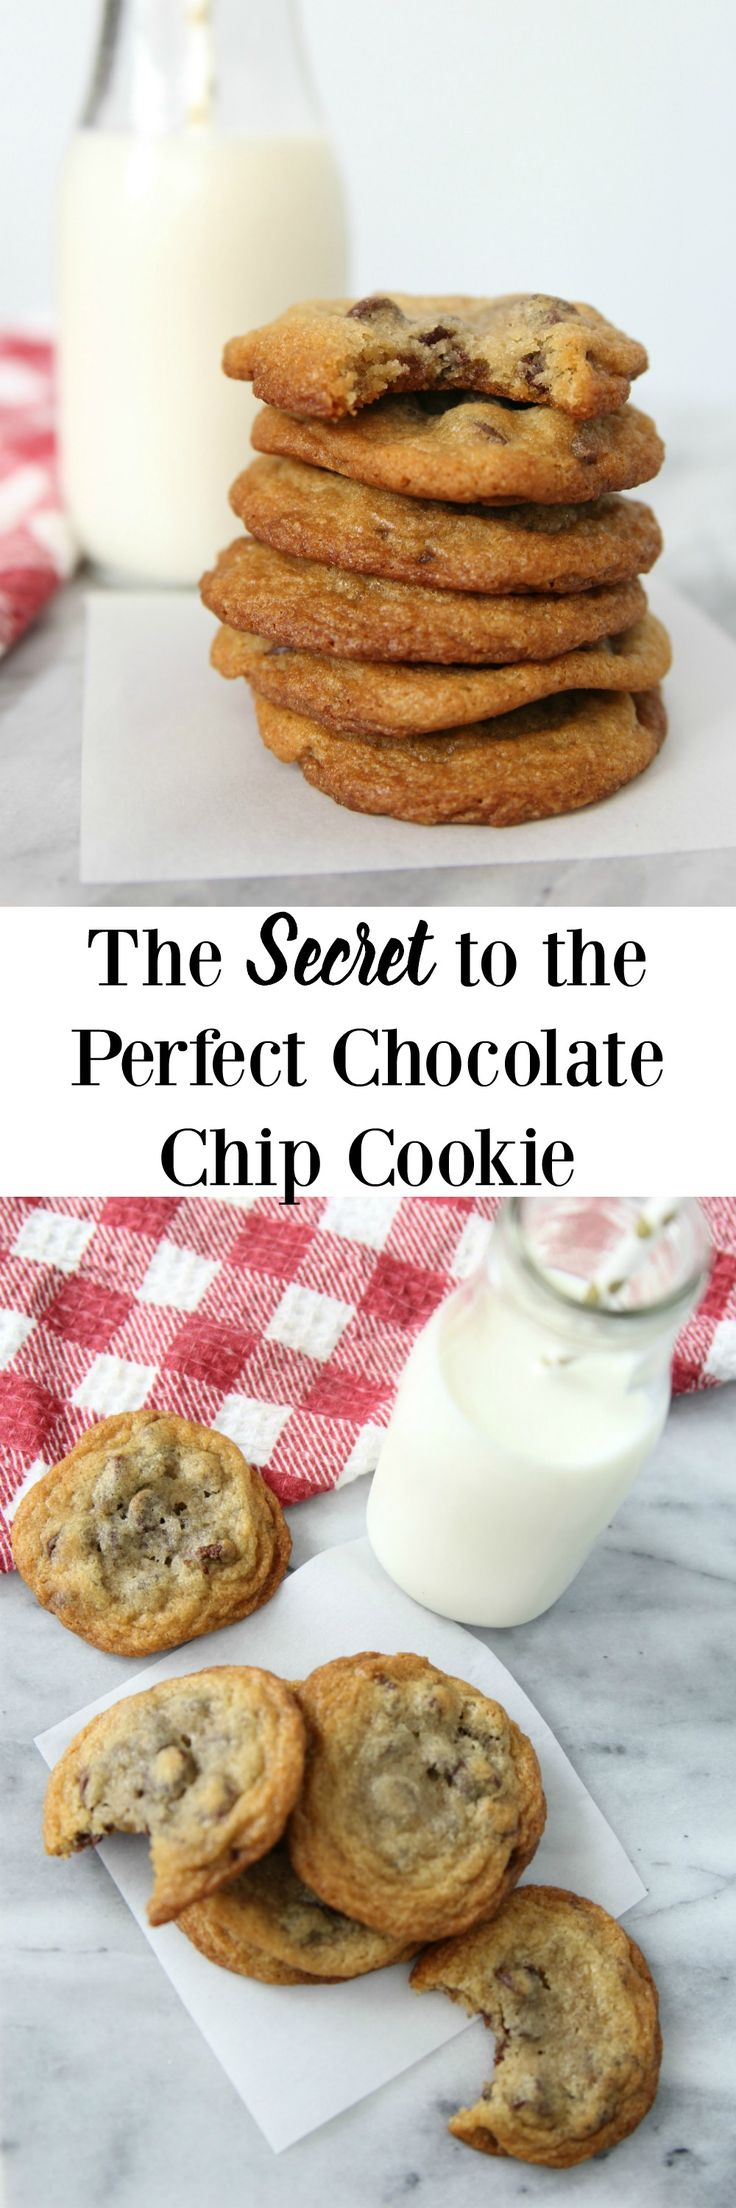 Best 10+ Perfect chocolate chip cookies ideas on Pinterest ...